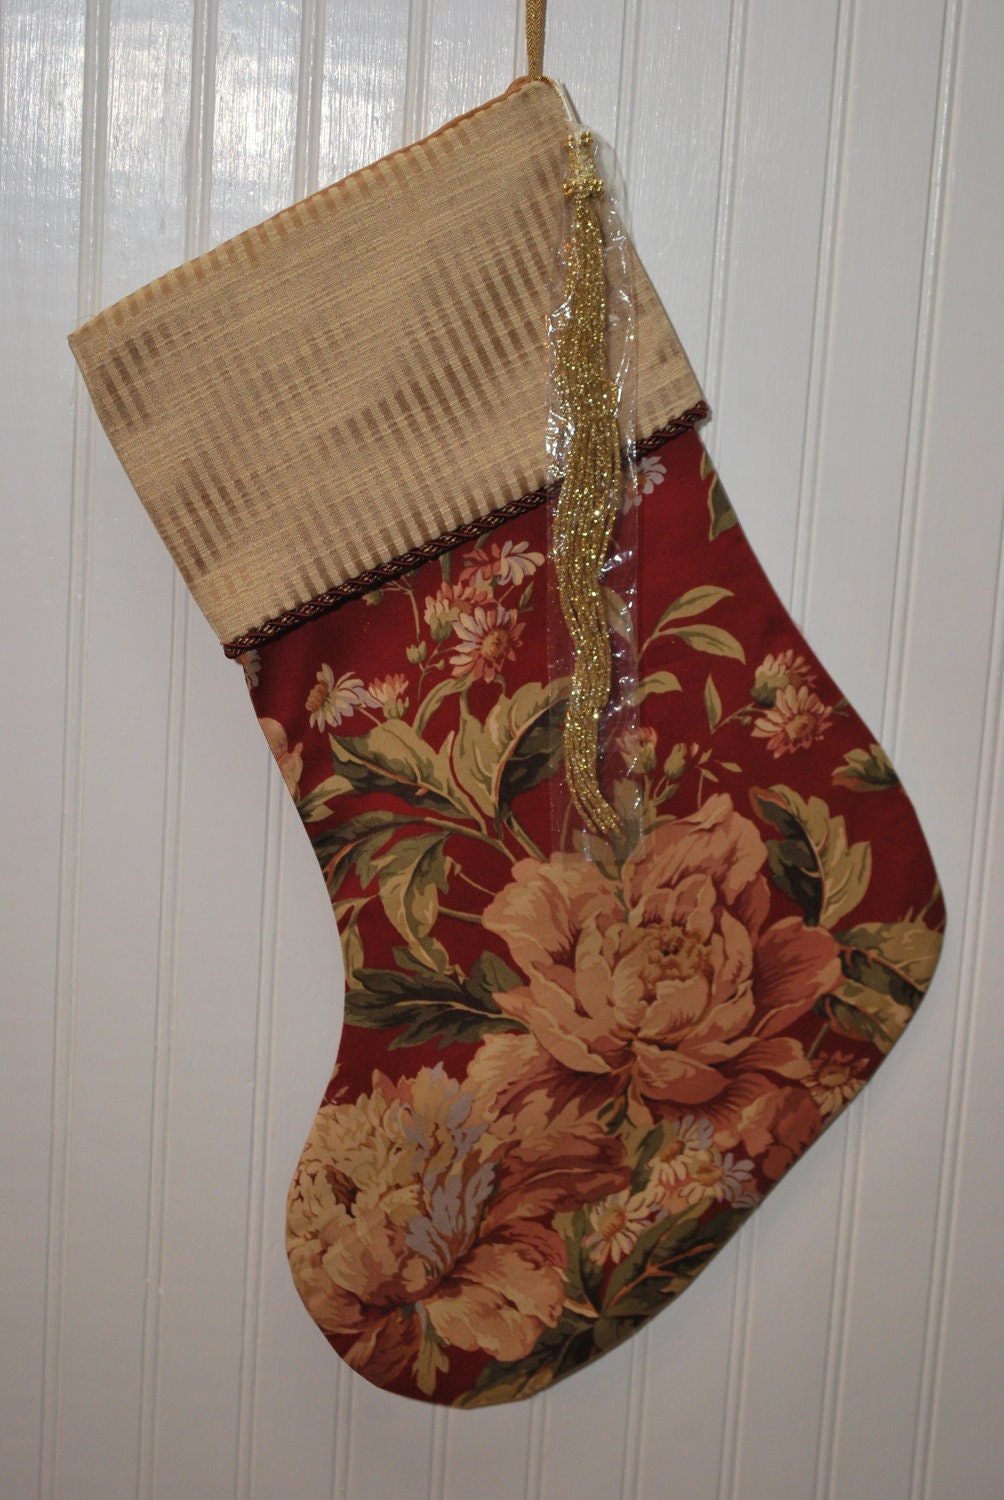 Christmas Stocking Red Floral, Gold Cuff, Glitzy Gold Bling Glitter Tassel